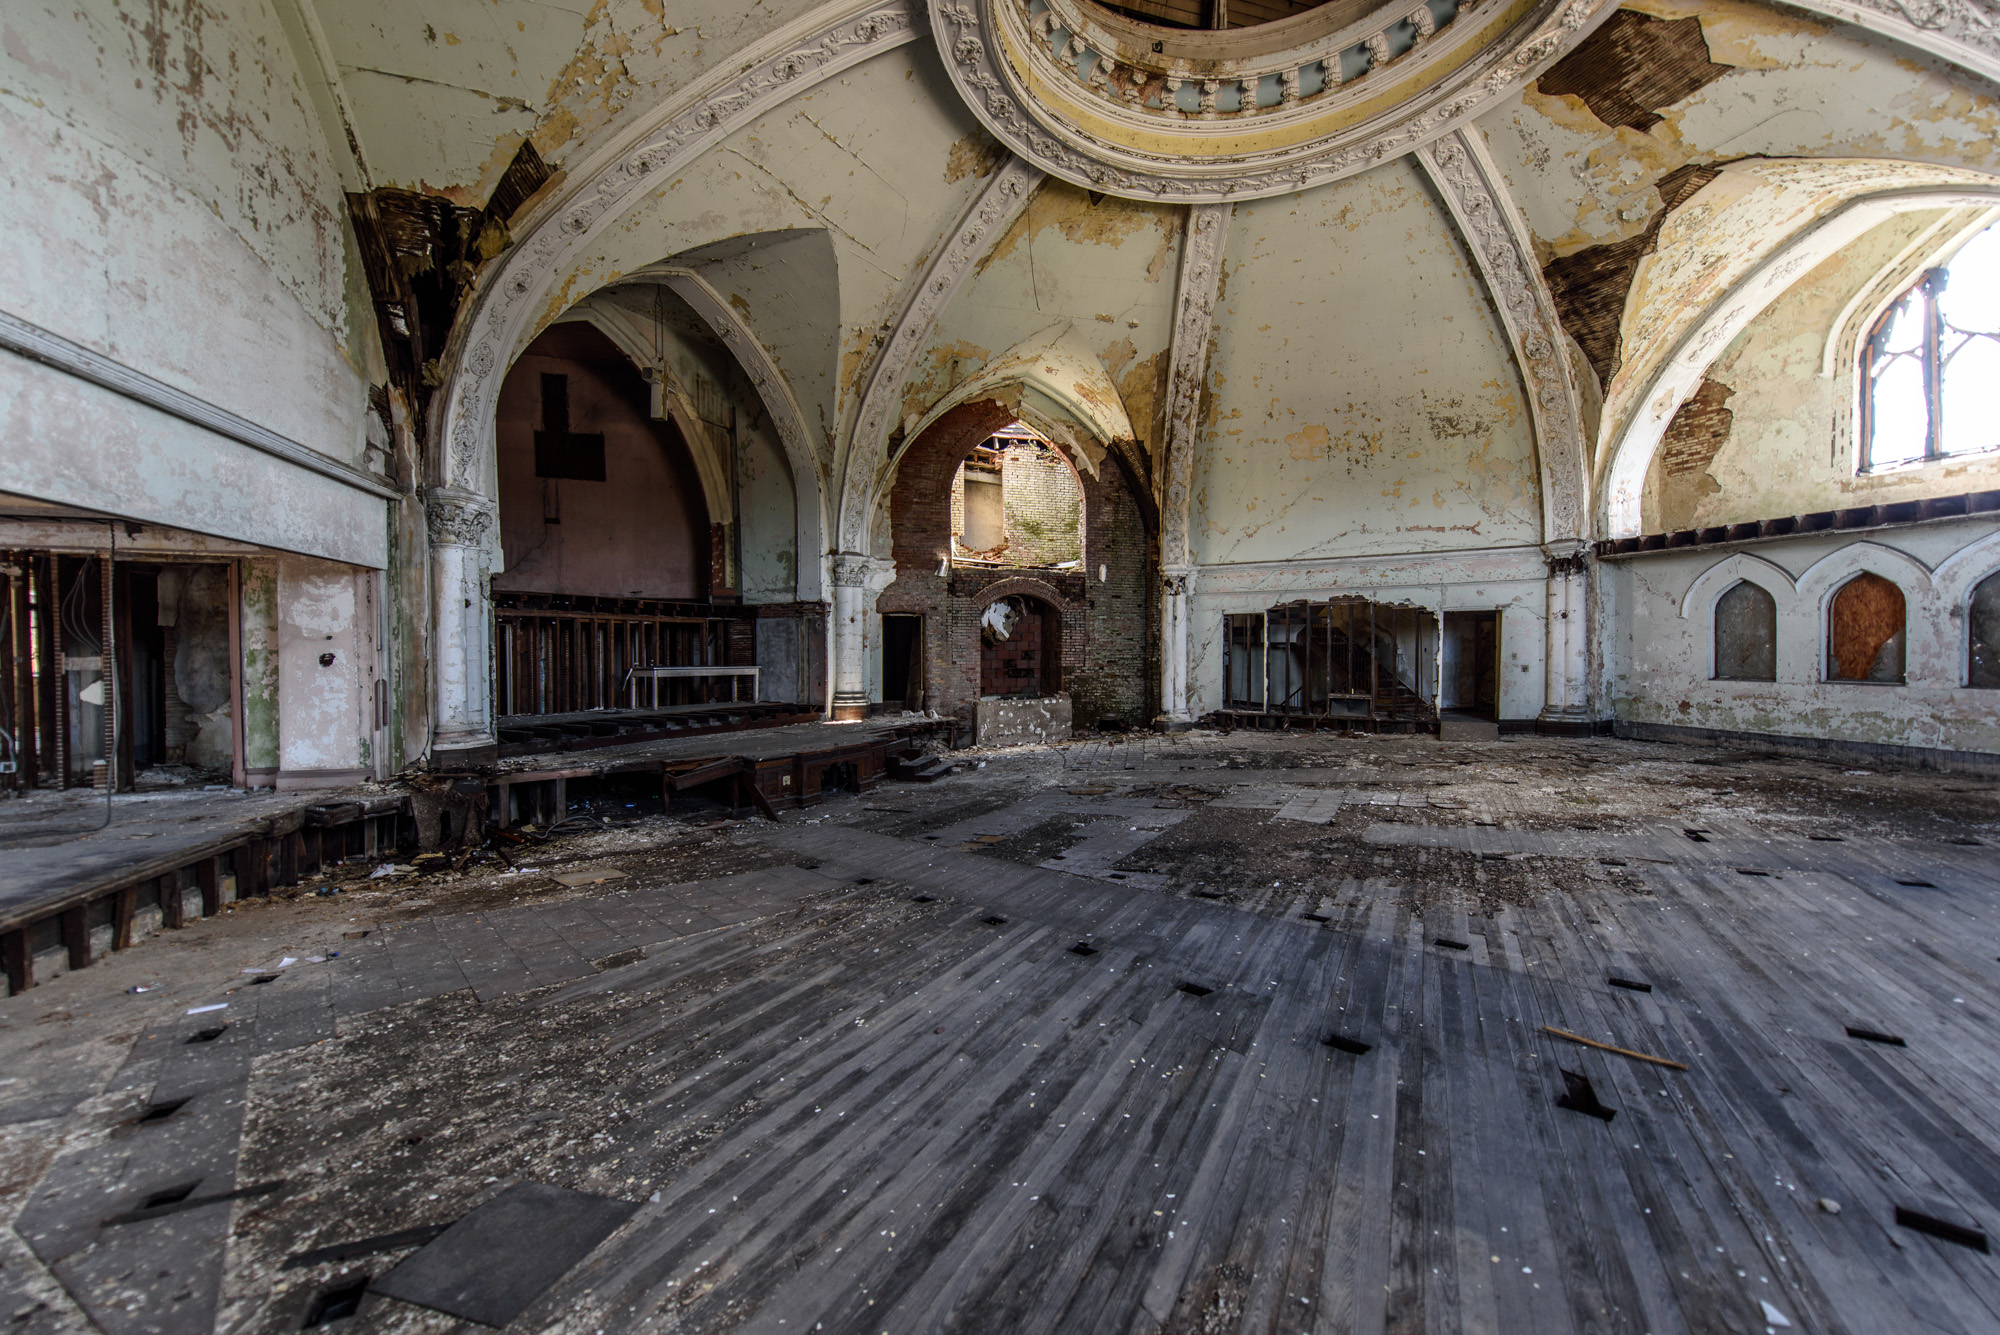 I can see this church filled and the people who were once here worshiping.